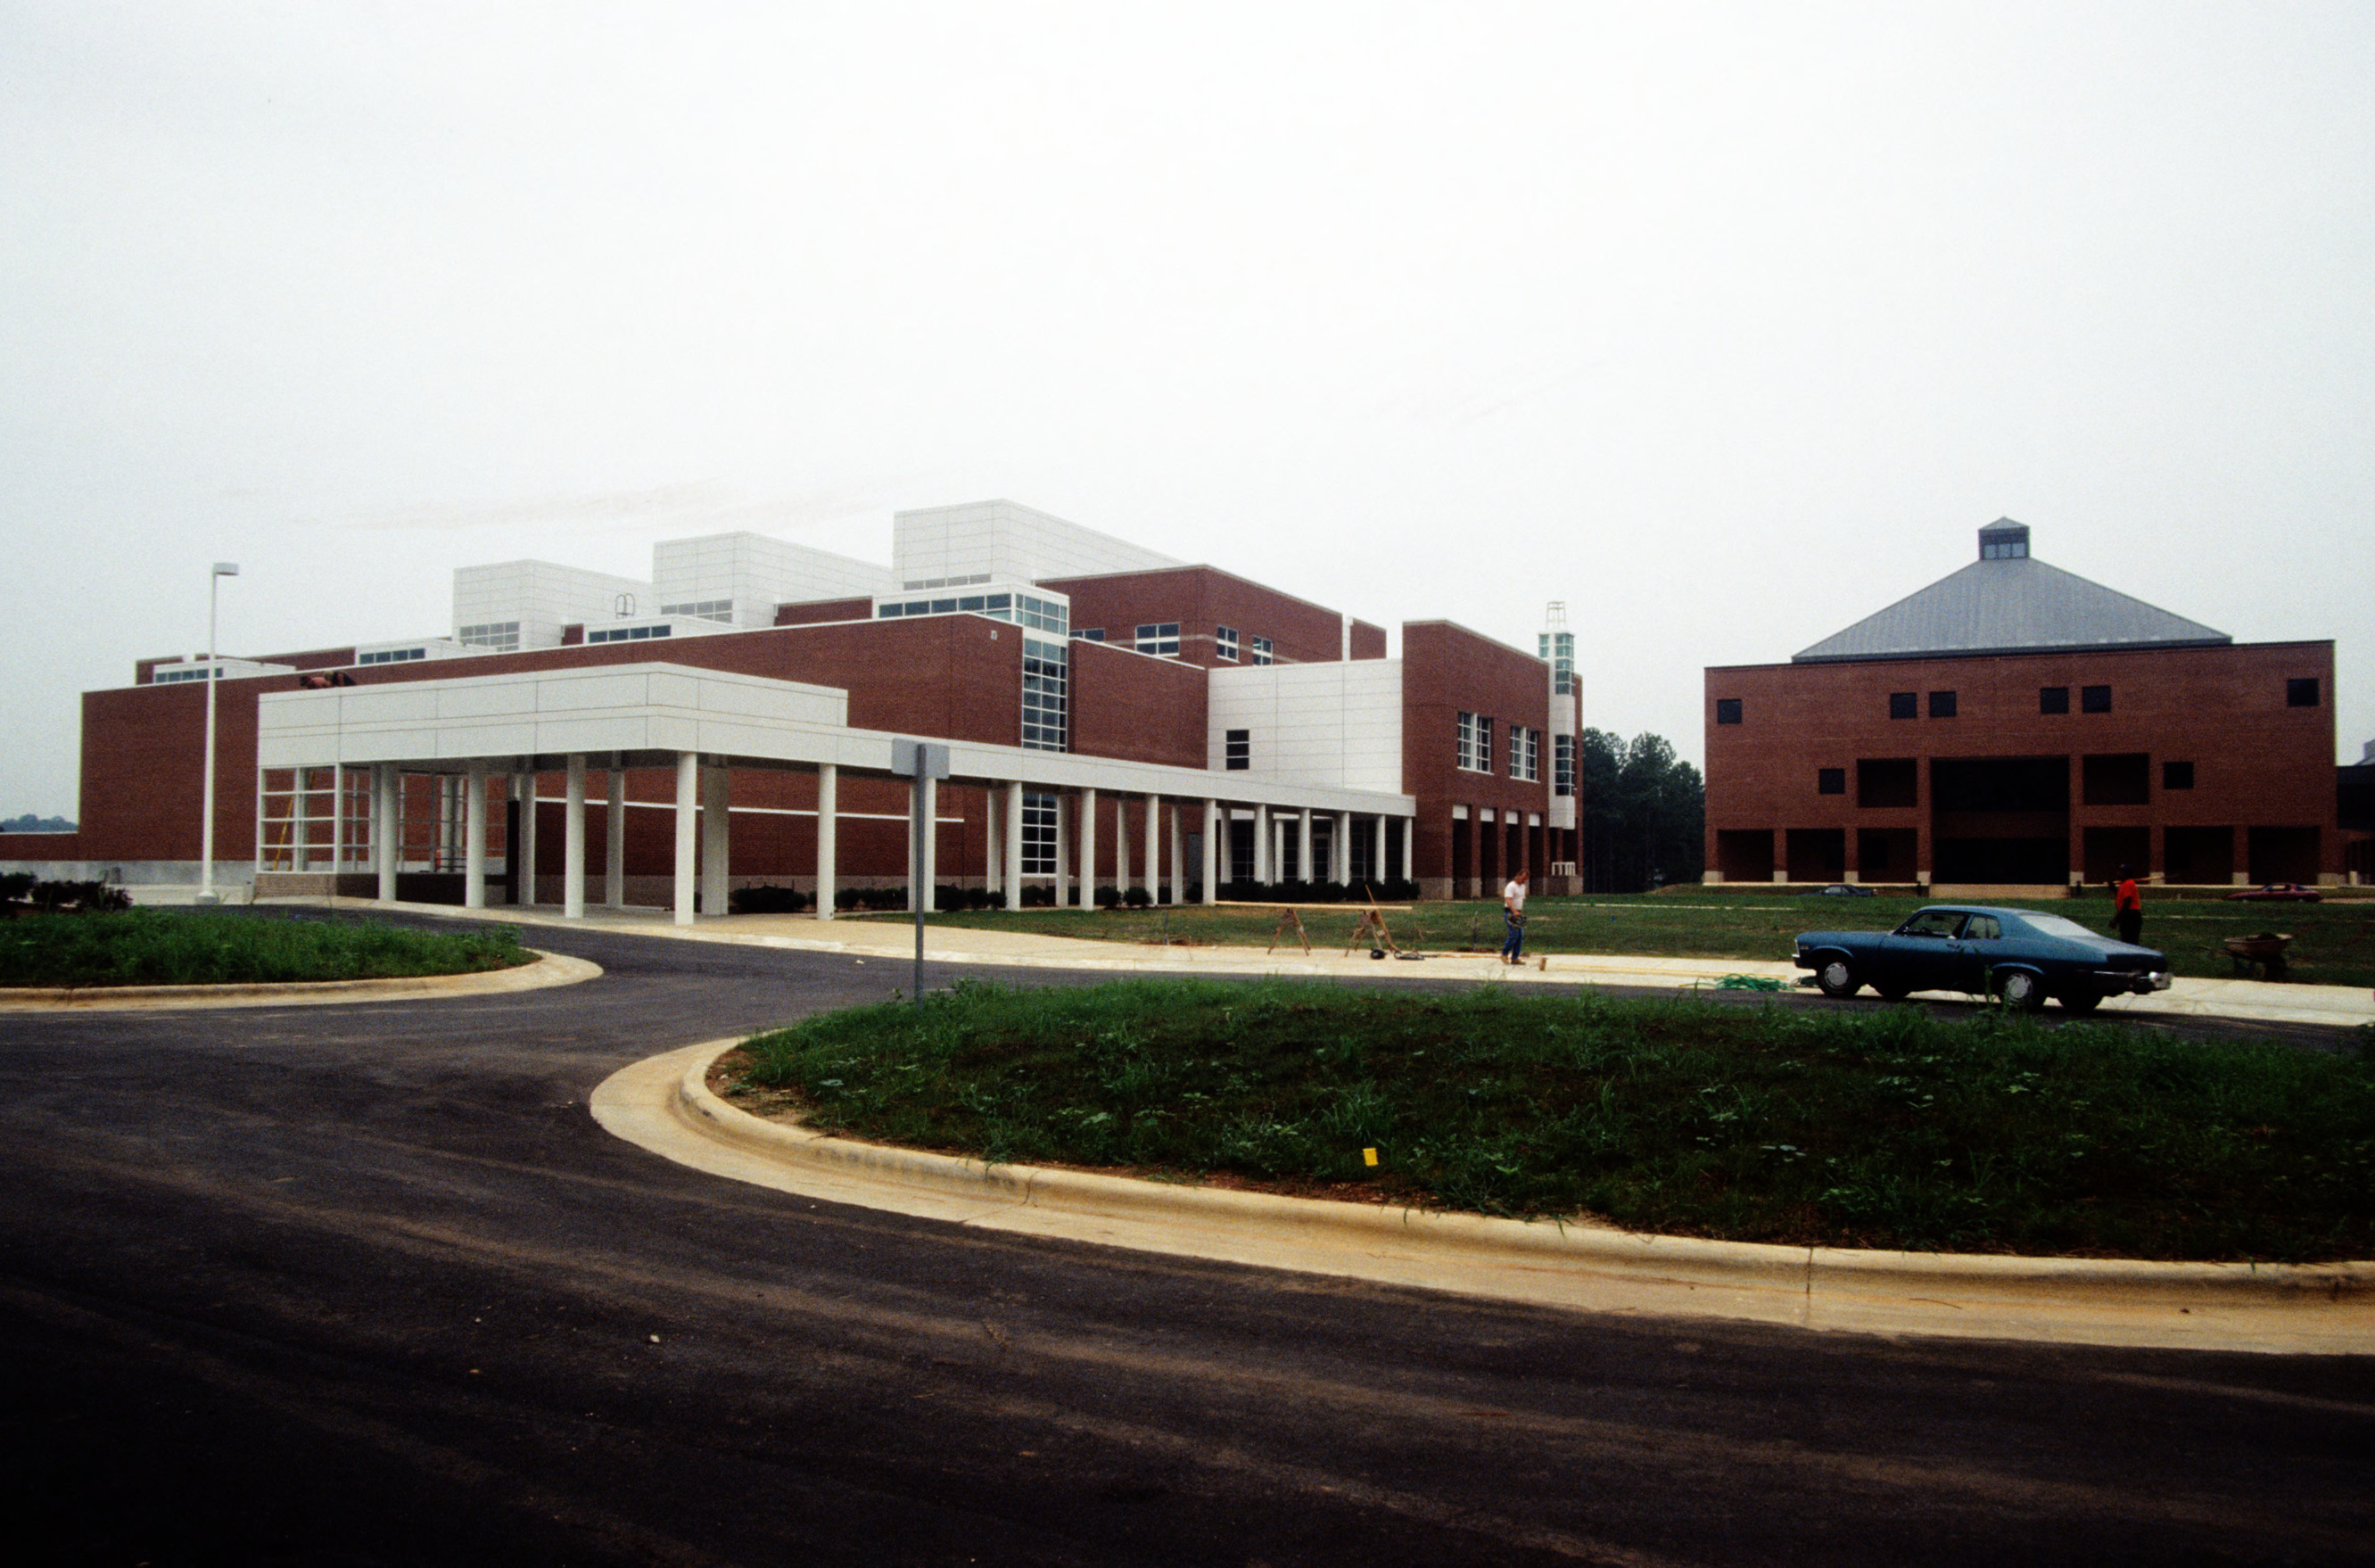 ABB Building, Centennial Campus, North Carolina State